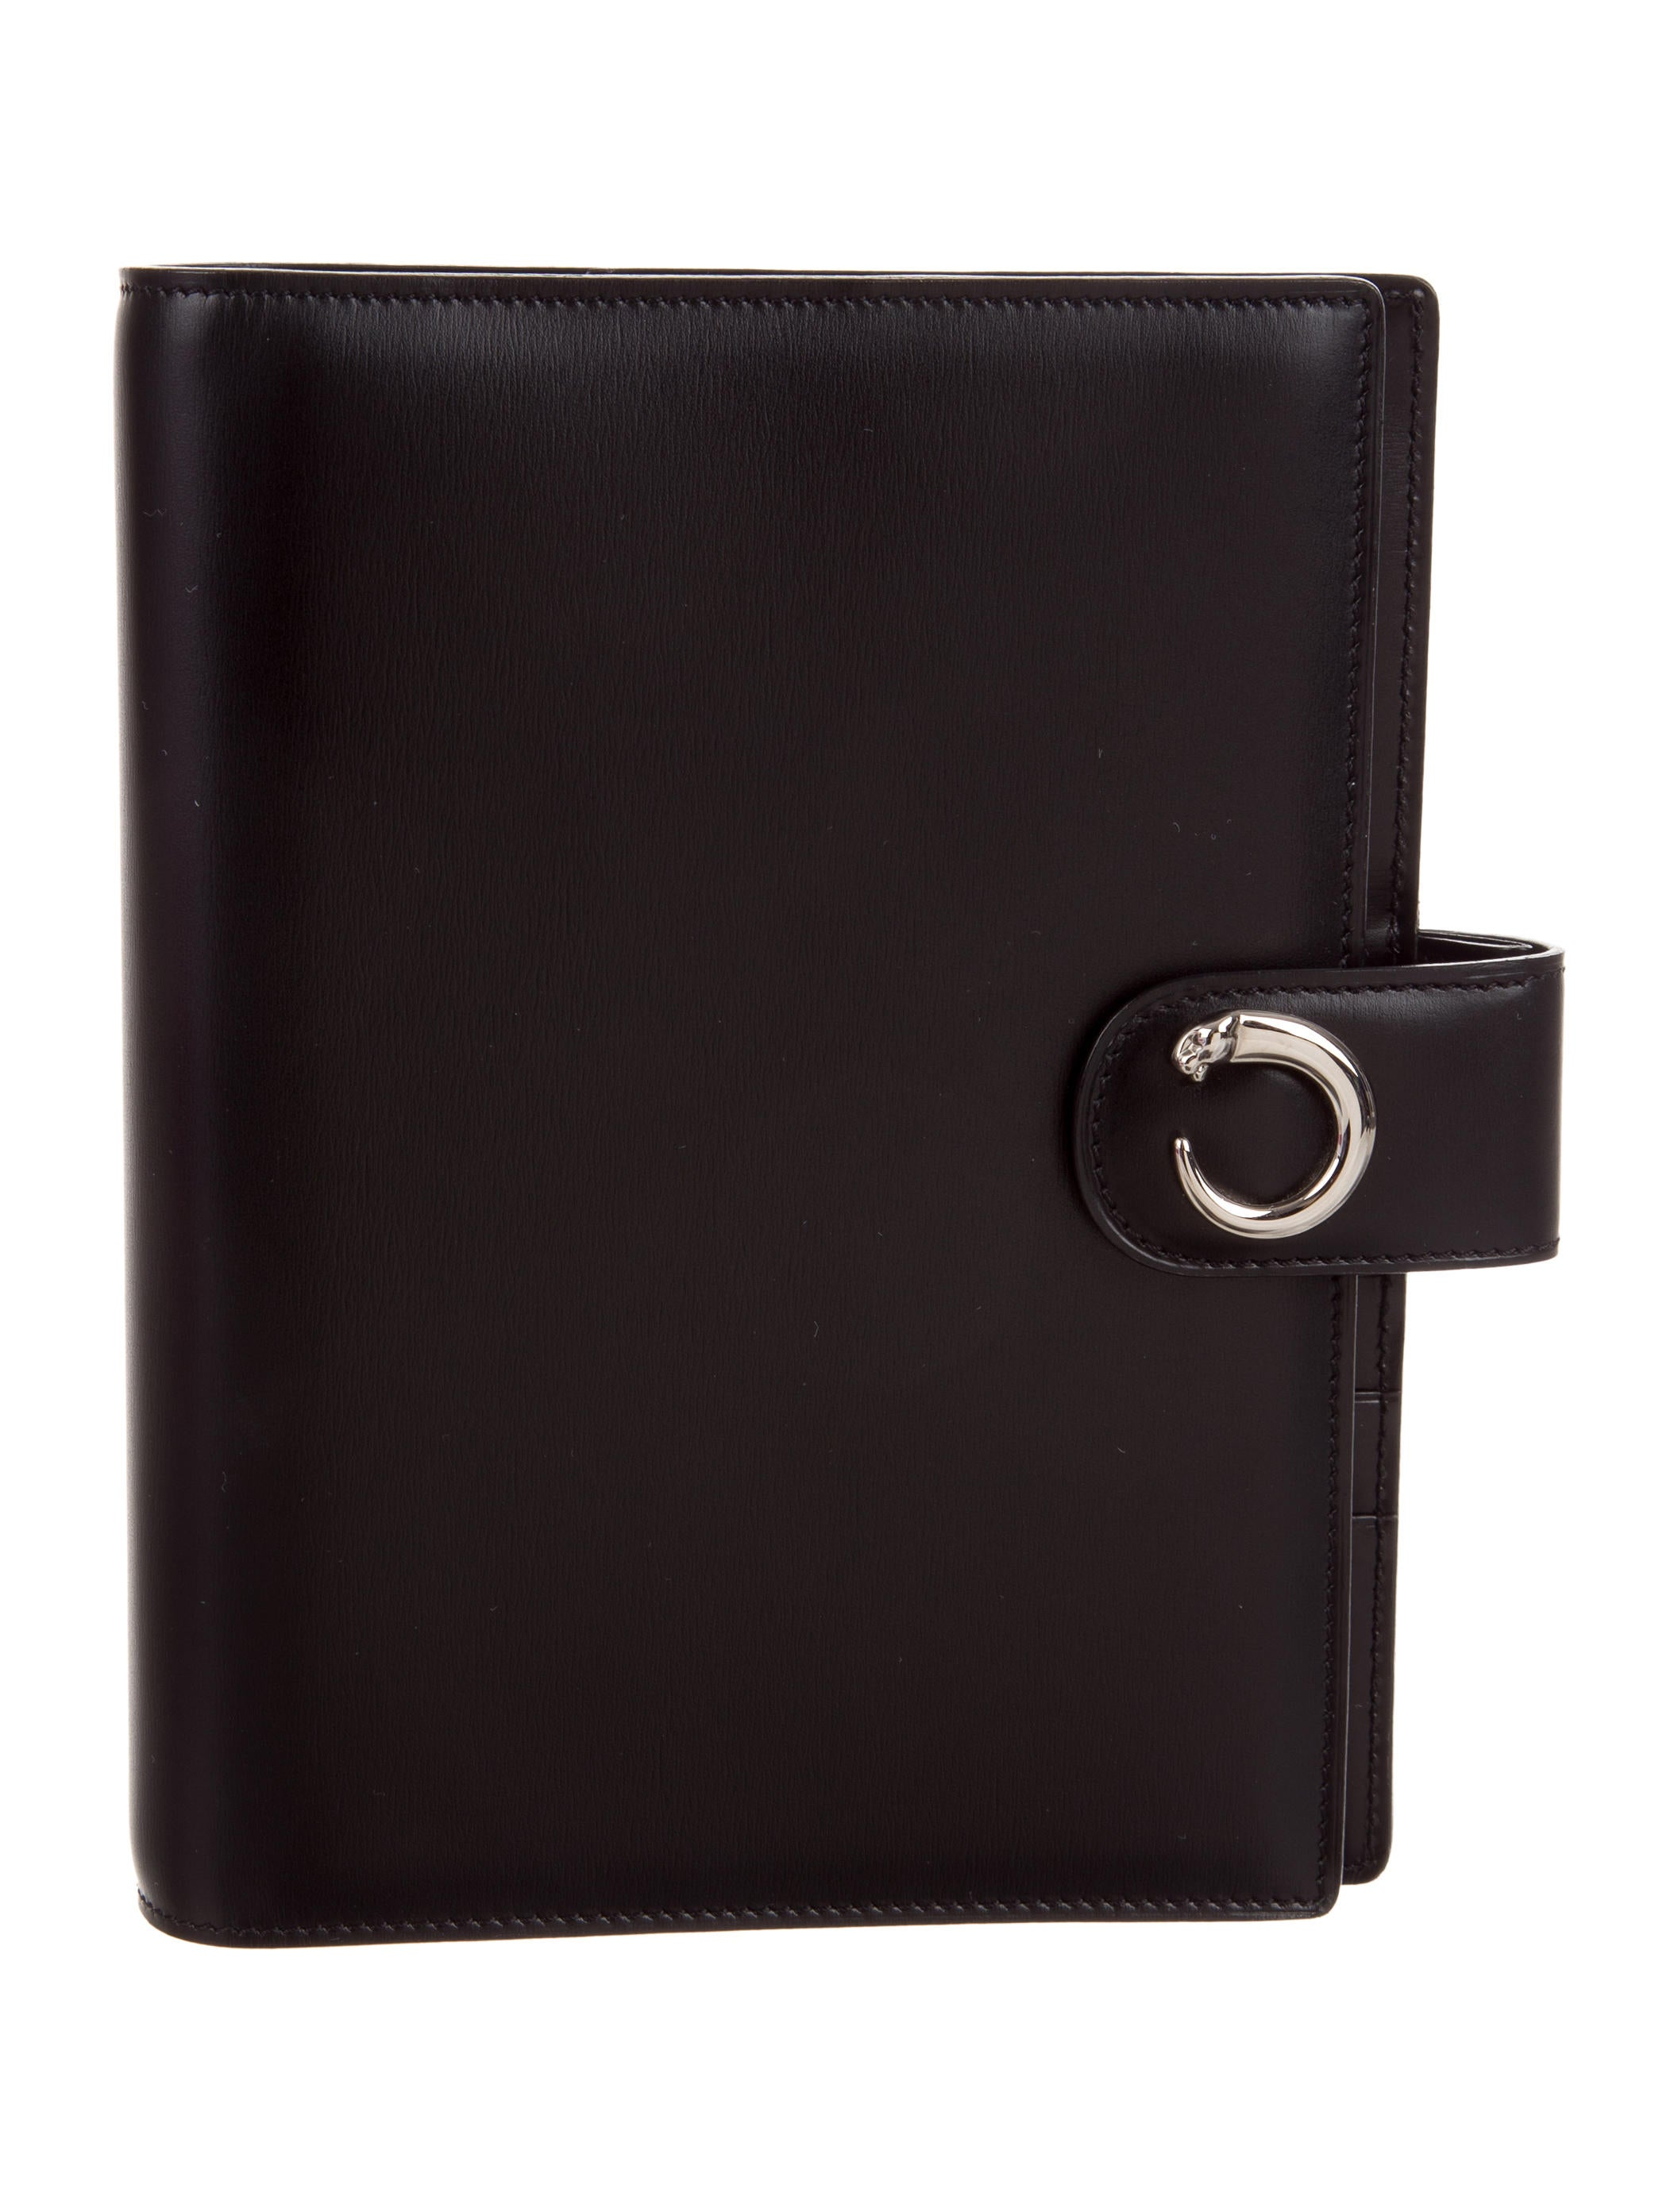 Cartier panthere agenda cover decor and accessories for Home decor and accessories